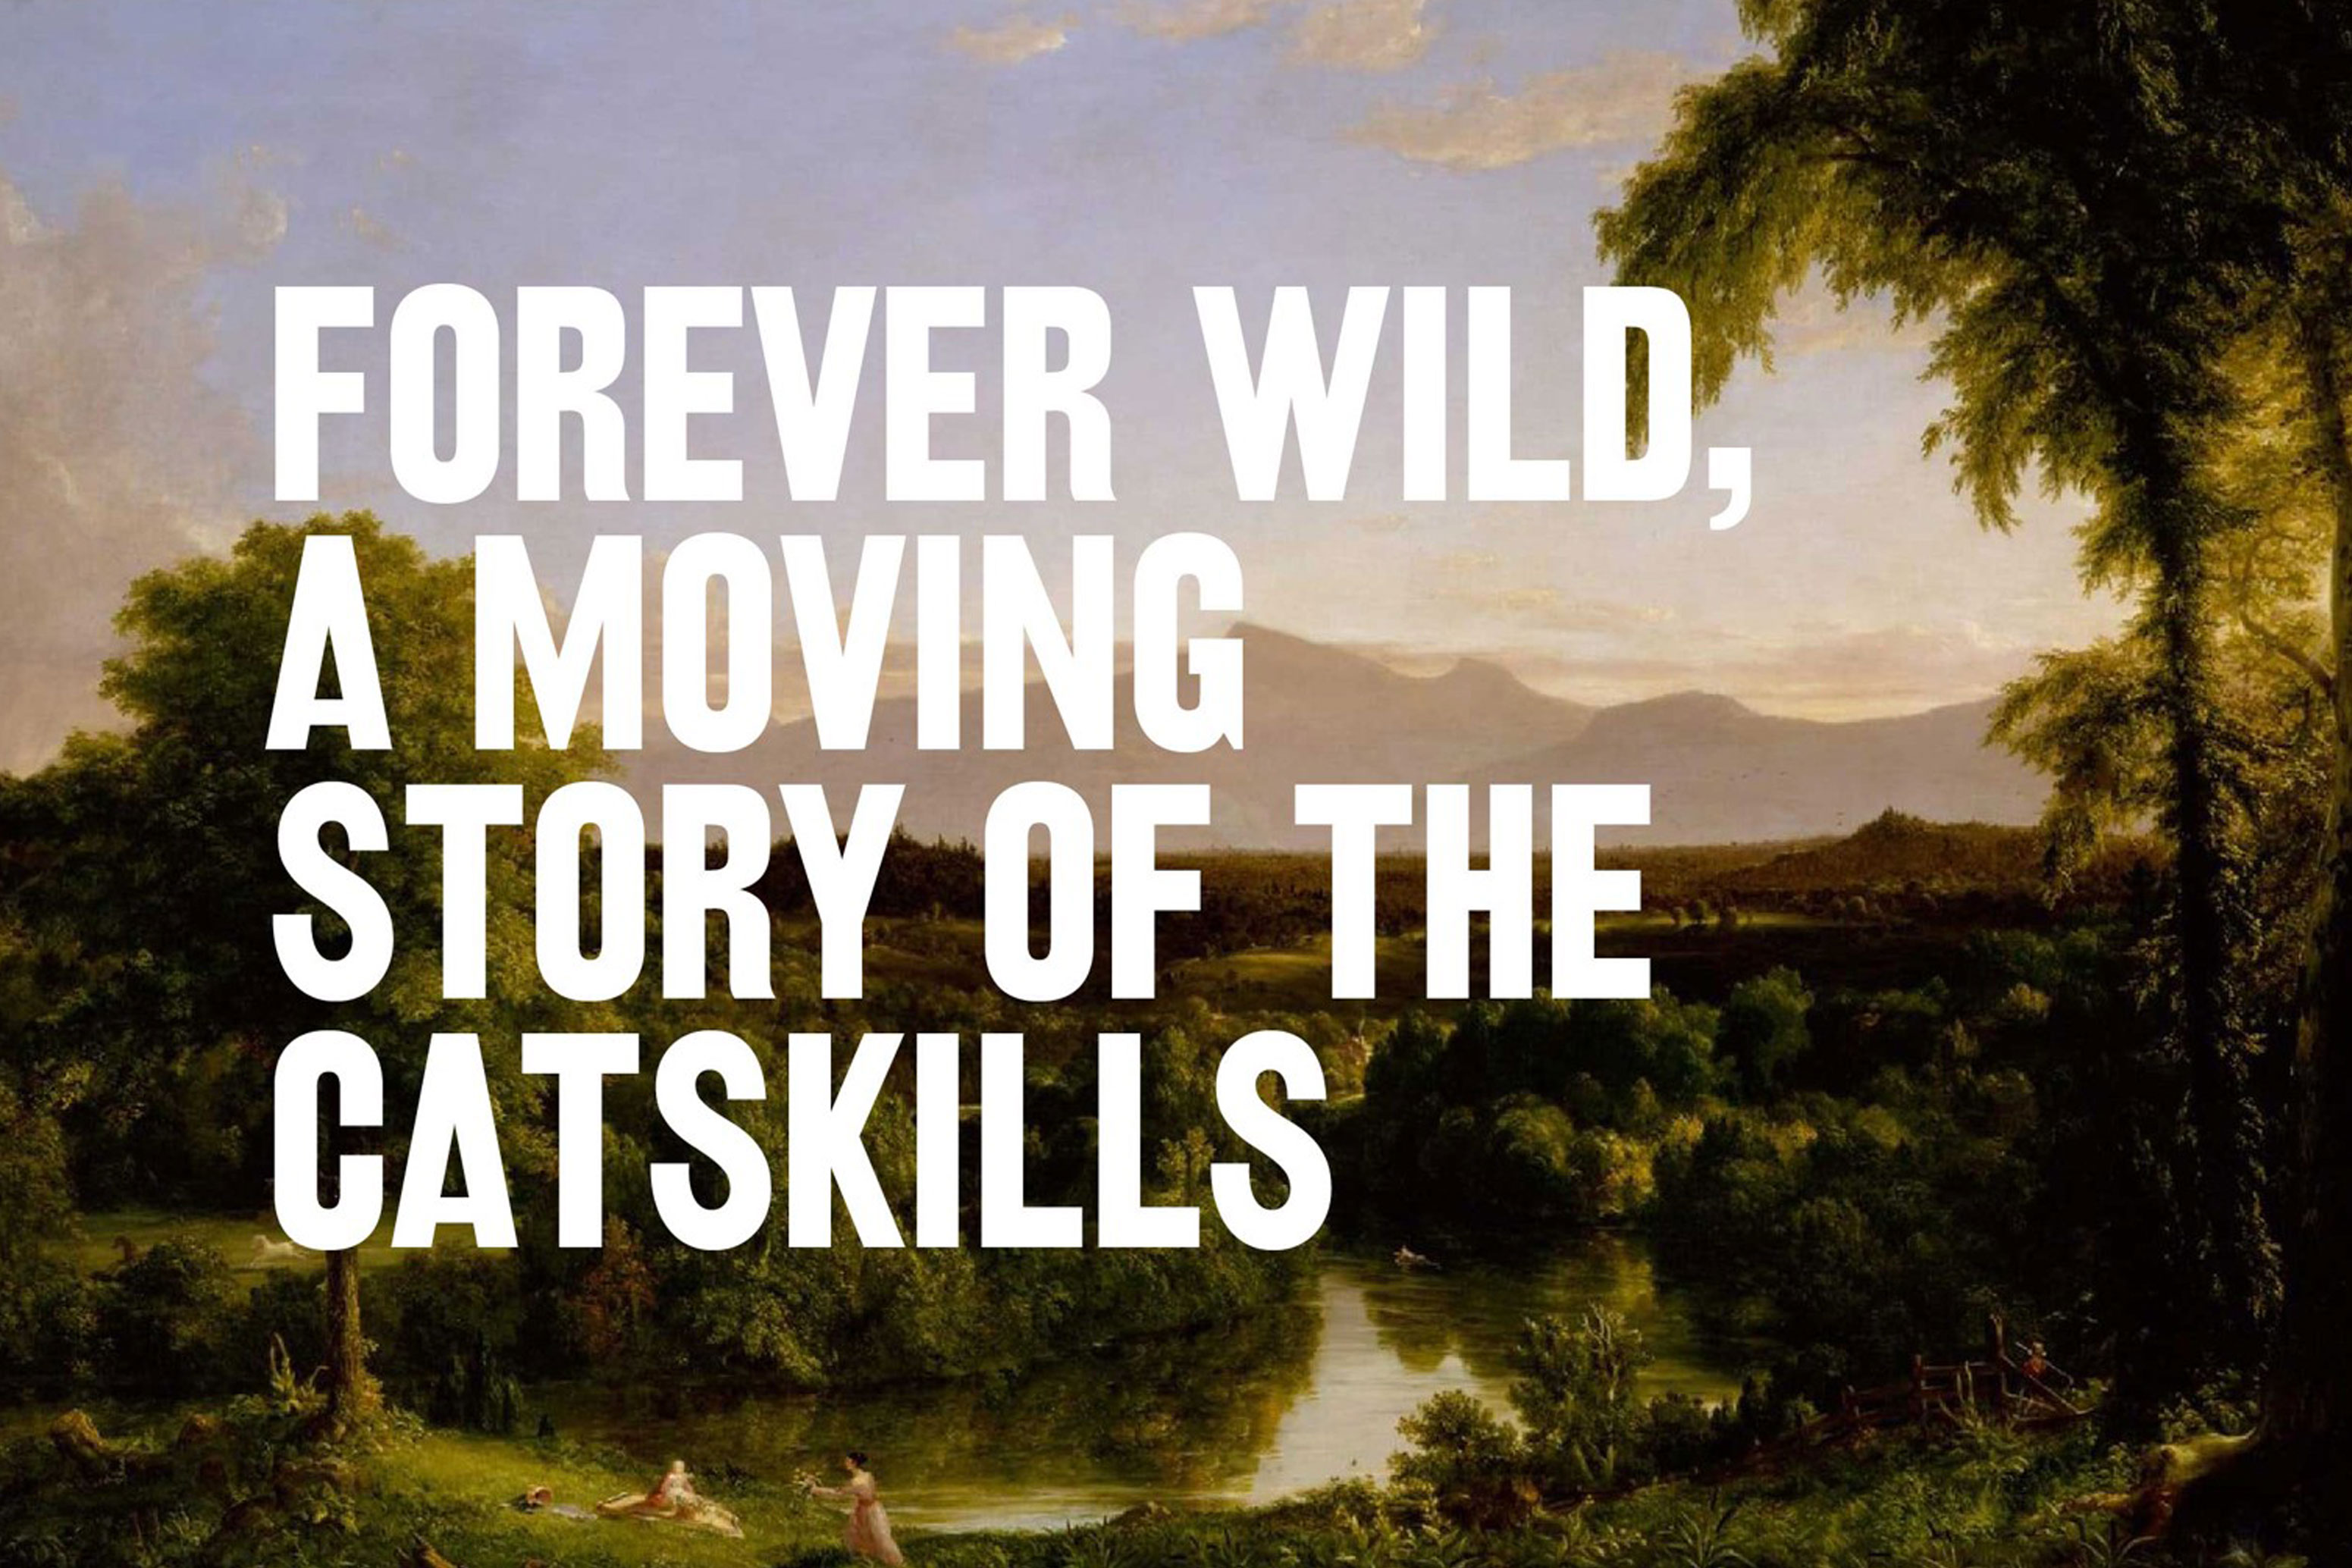 Forever Wild, A Moving Story of the Catskills